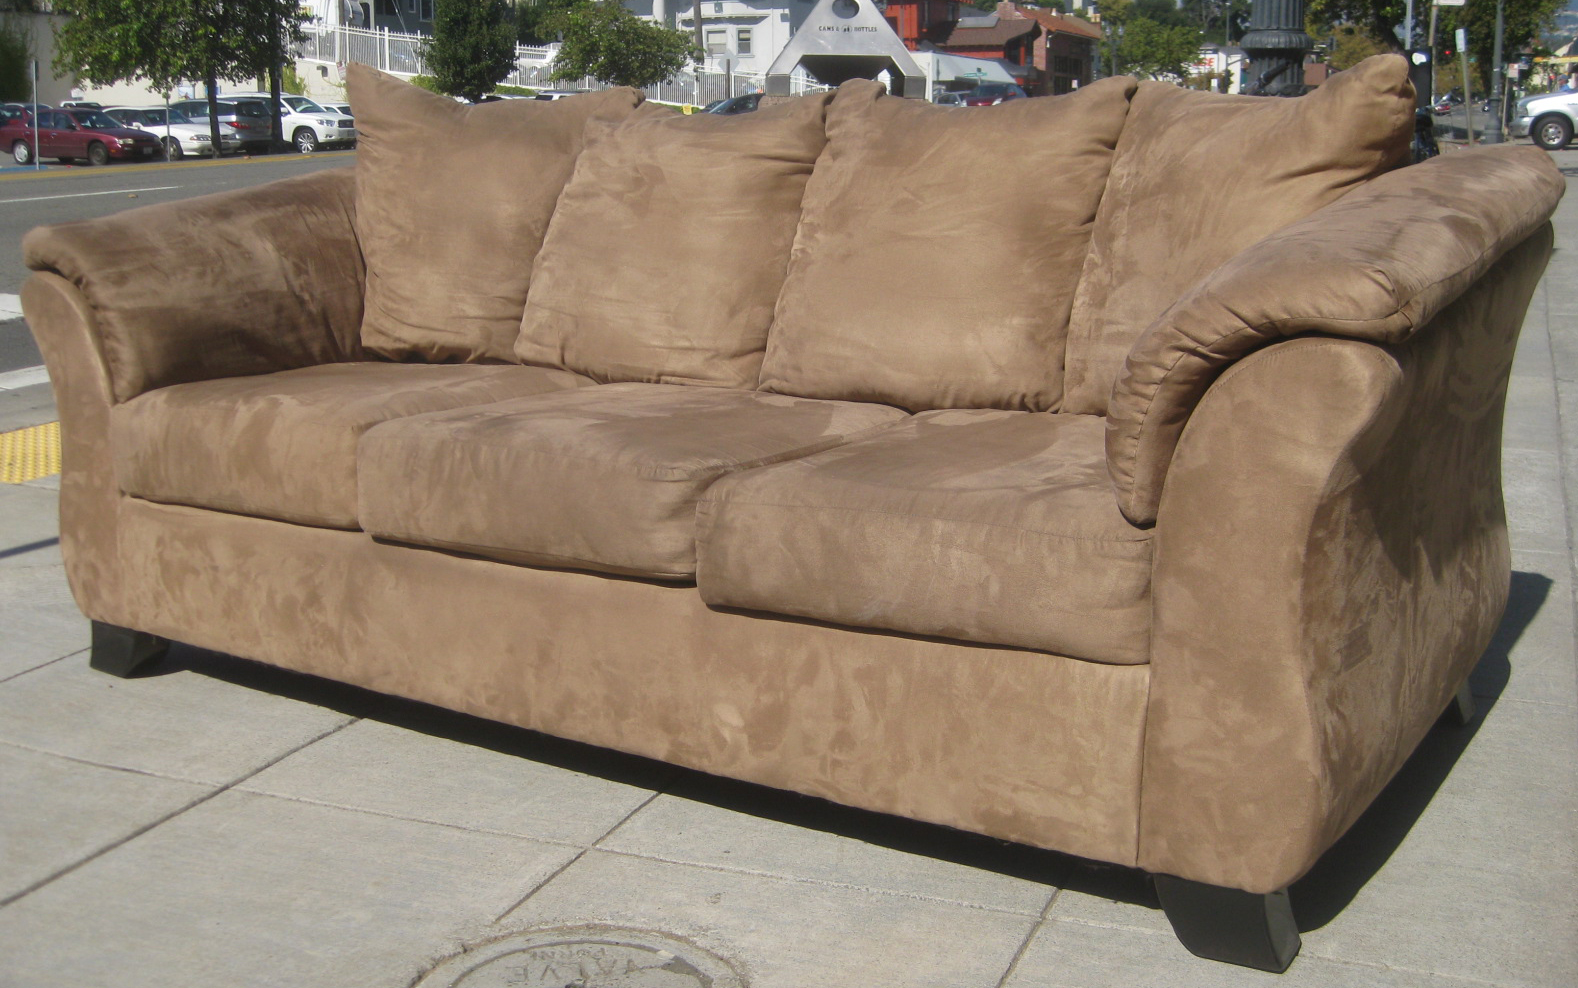 How To Clean Suede Sofas At Home Medium Sized Sofa A Couch 301 Moved Permanently